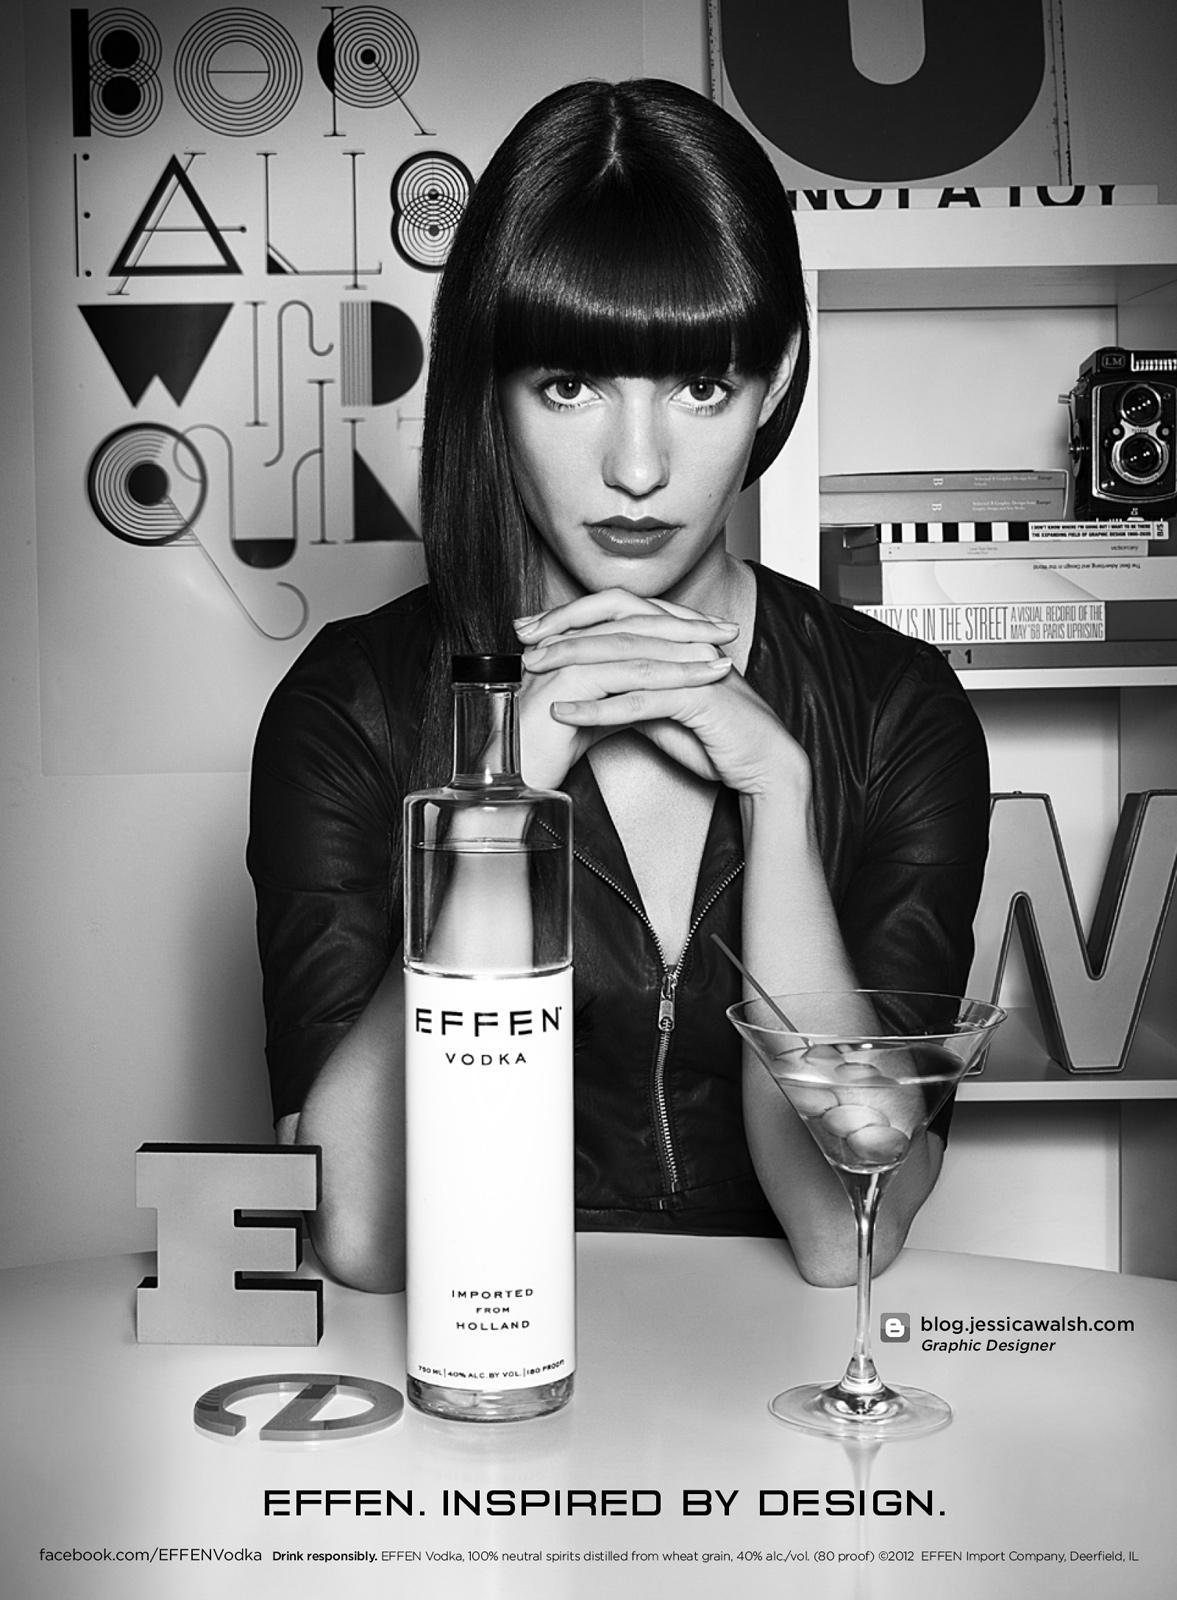 Effen Vodka Print Ad -  Inspired by design - Jessica Walsh